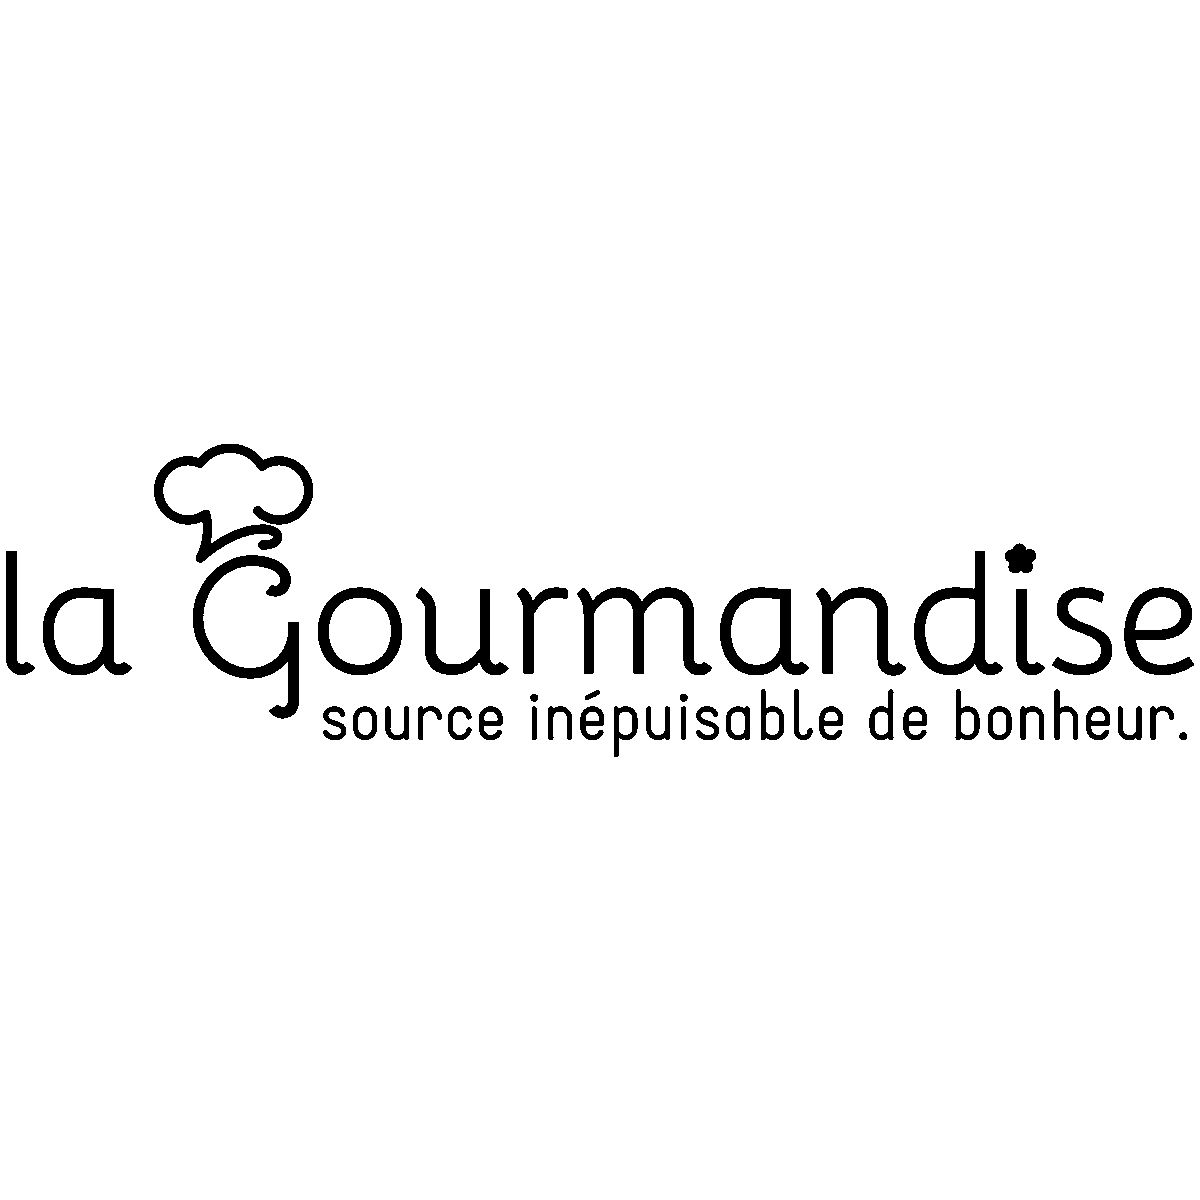 sticker citation cuisine la gourmandise source de bonheur stickers citations fran ais. Black Bedroom Furniture Sets. Home Design Ideas